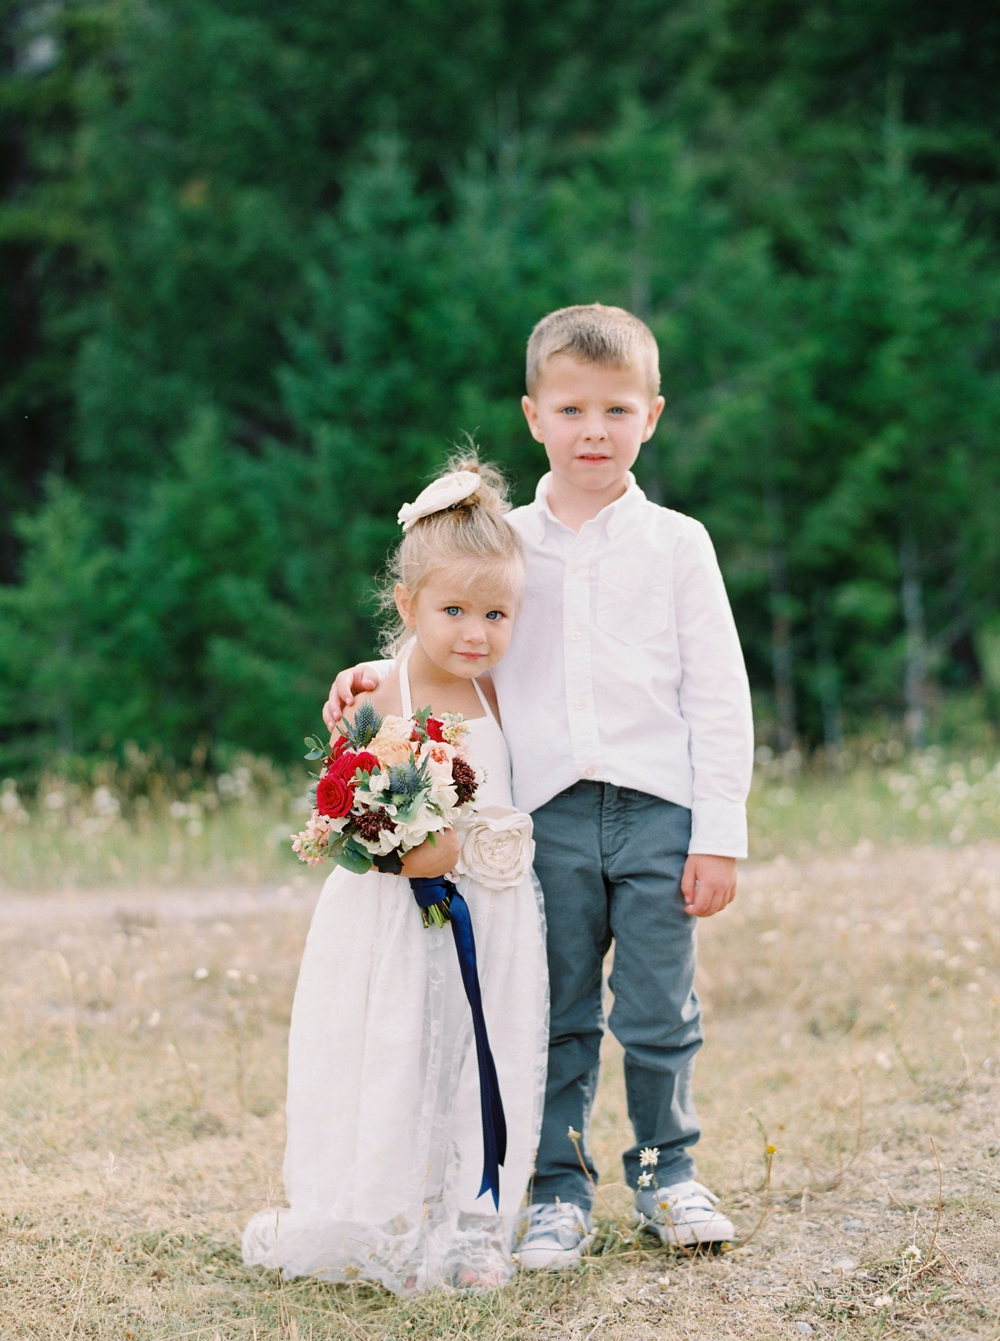 Banff Wedding Photographers | Banff tunnel mountain reservoir | wedding ceremony decor brightly colored florals | flower girl and ring bearer | Justine Milton fine art film photographers